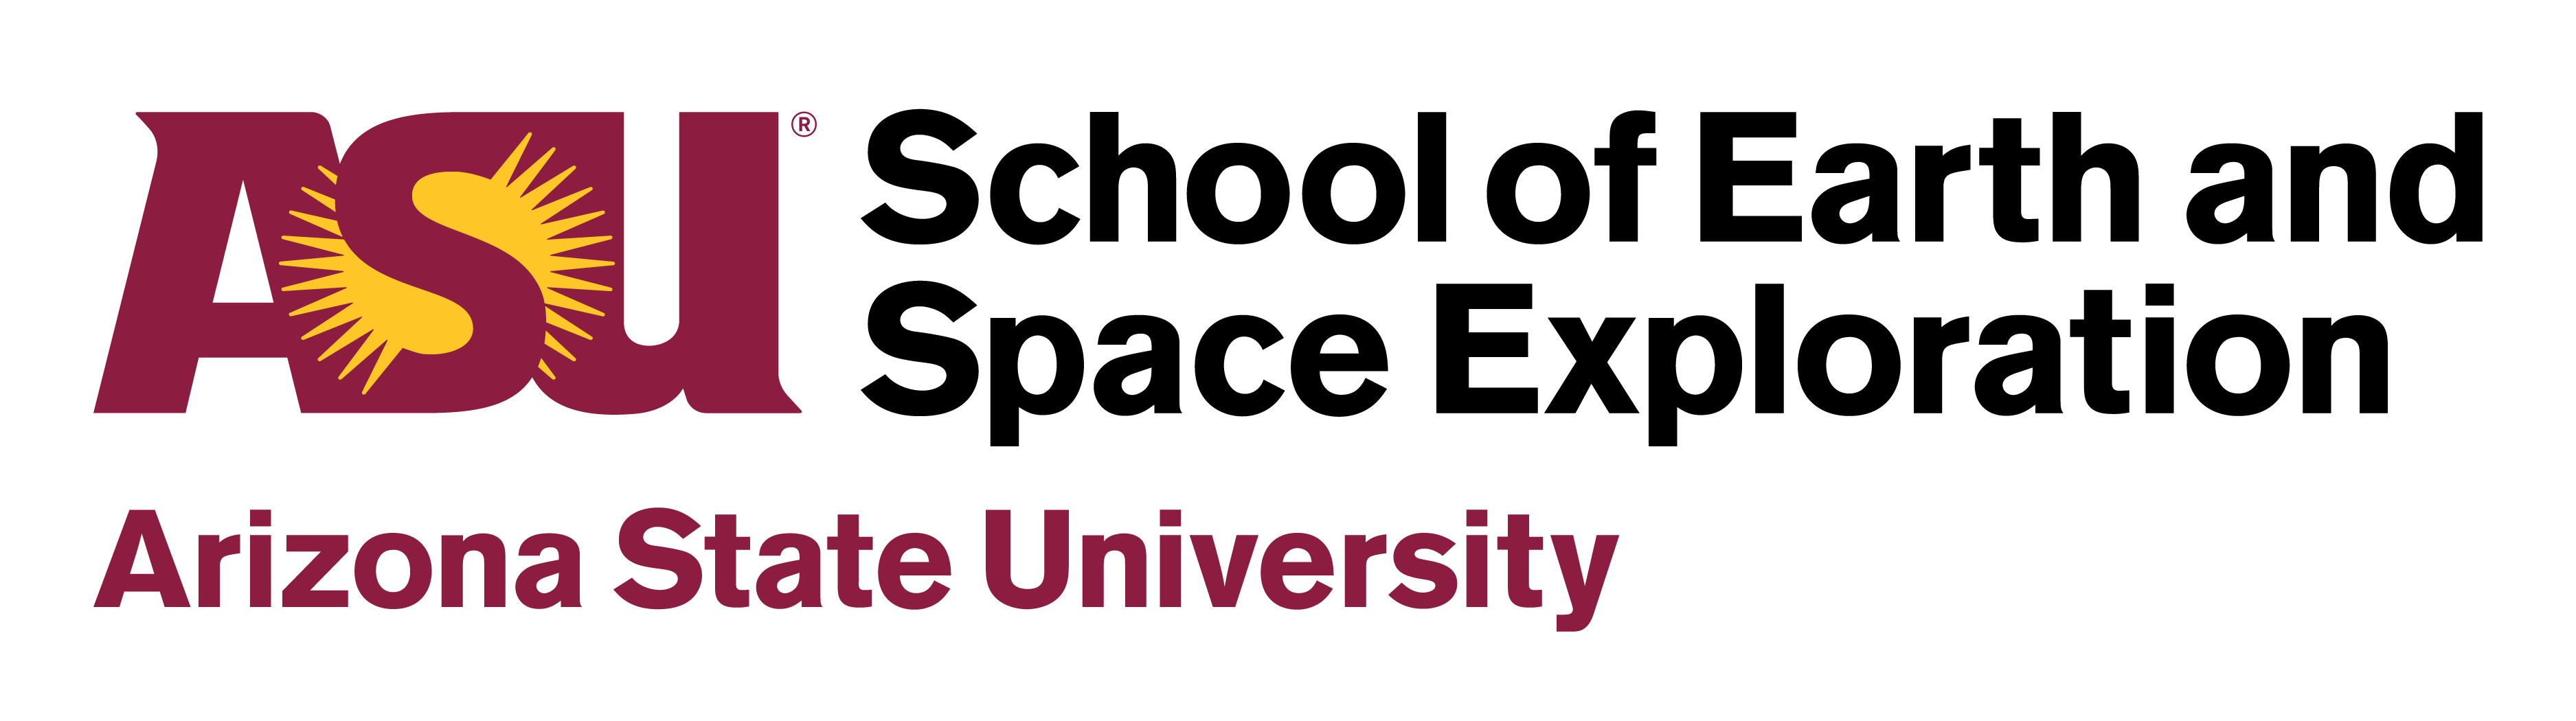 ASU School of Earth and Space Exploration logo